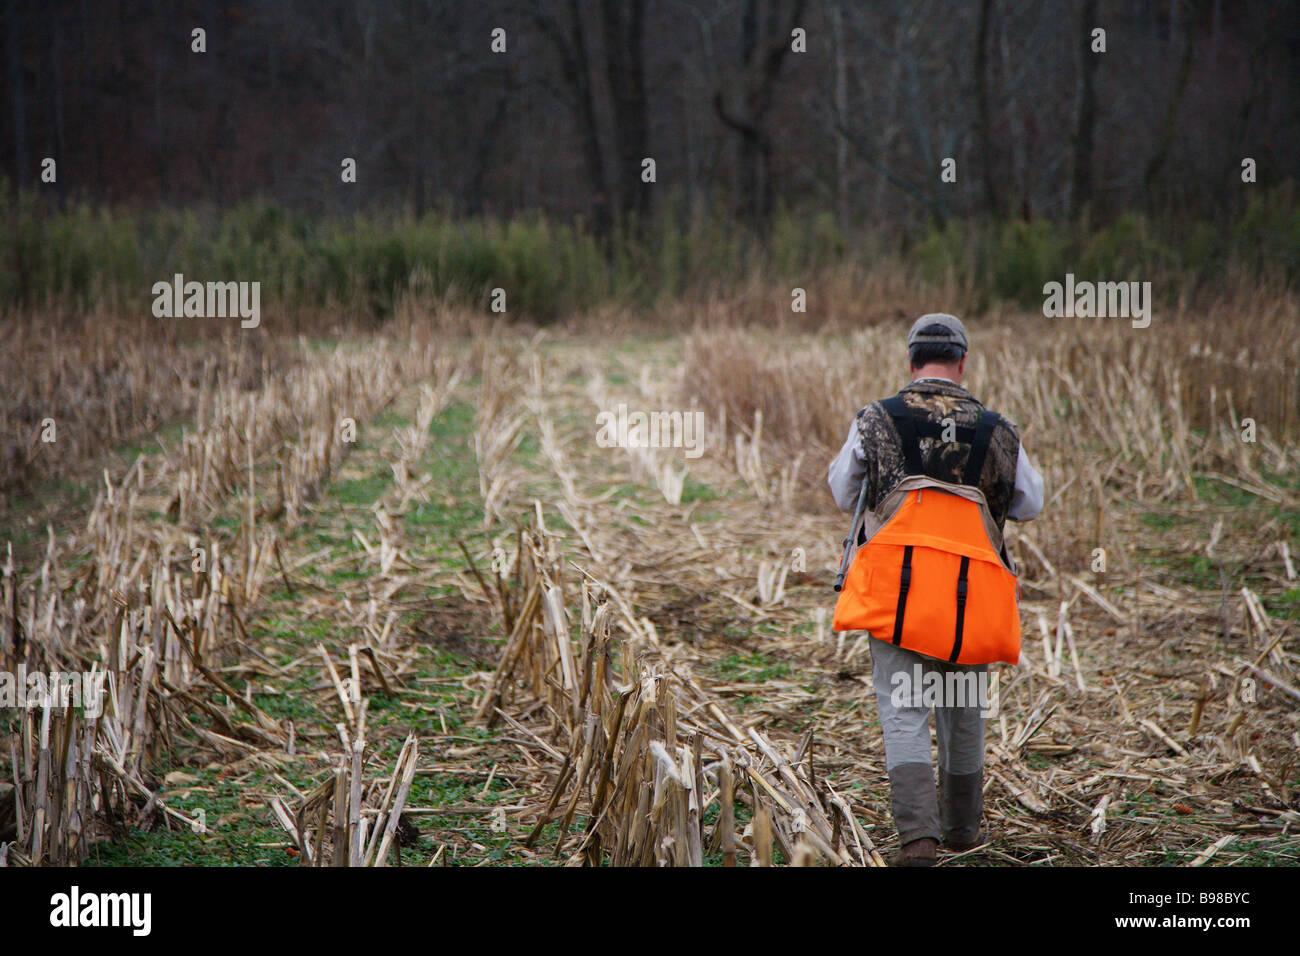 c3ae265a84efd HUNTING GUIDE WALKING AN OPEN FIELD CABELLAS ORANGE CARRY VEST BROWNING HAT  LL BEAN PANT